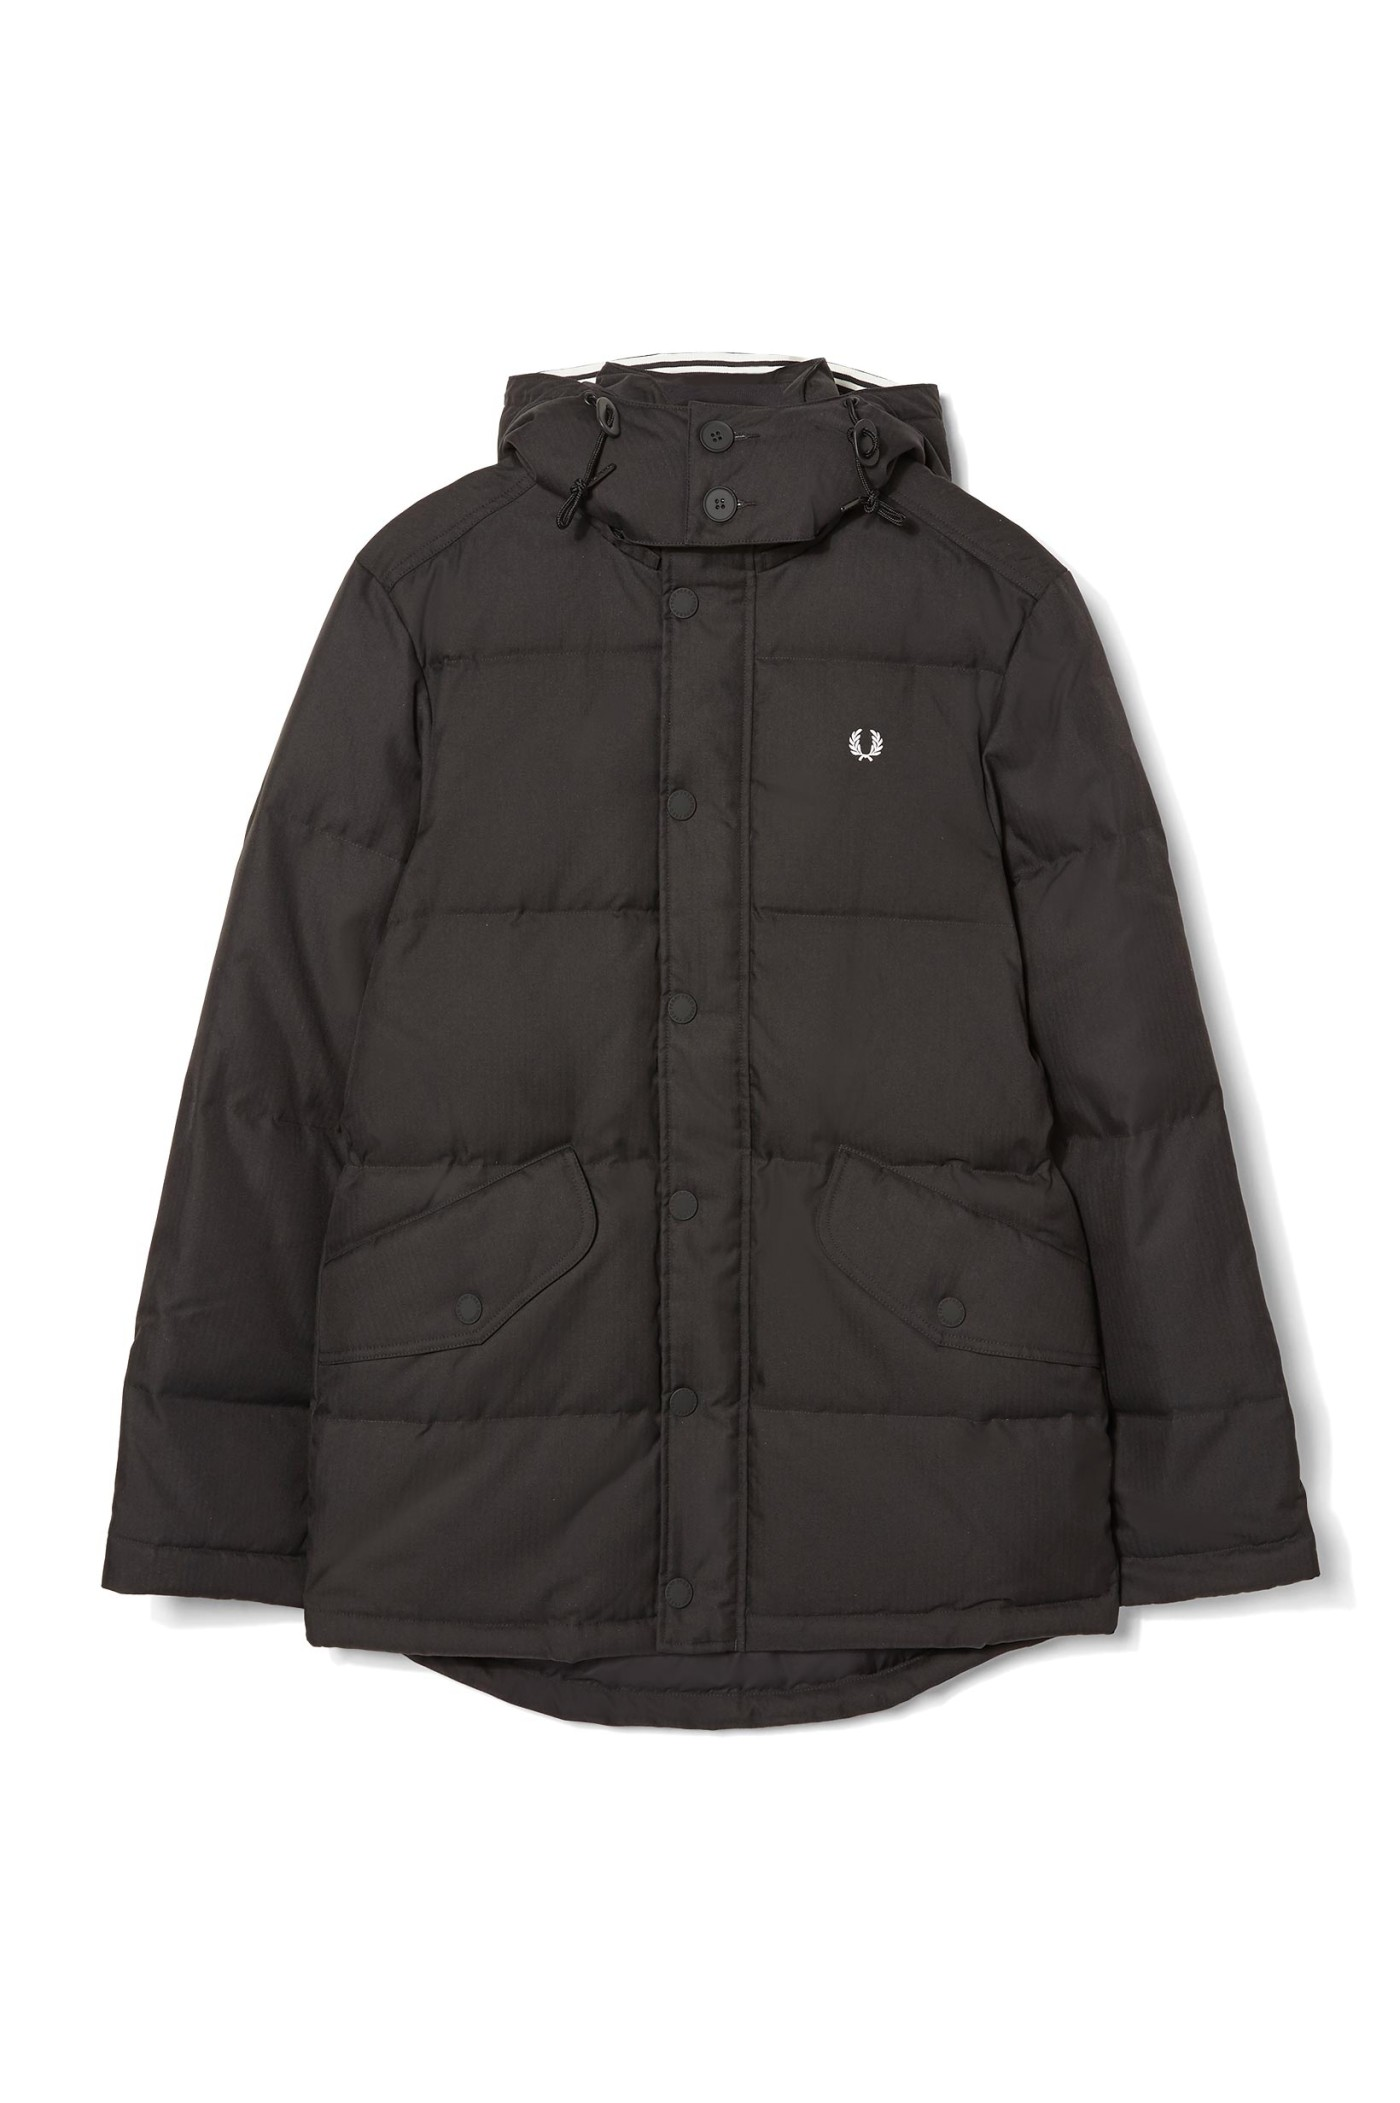 Fred perry black down filled parka jacket